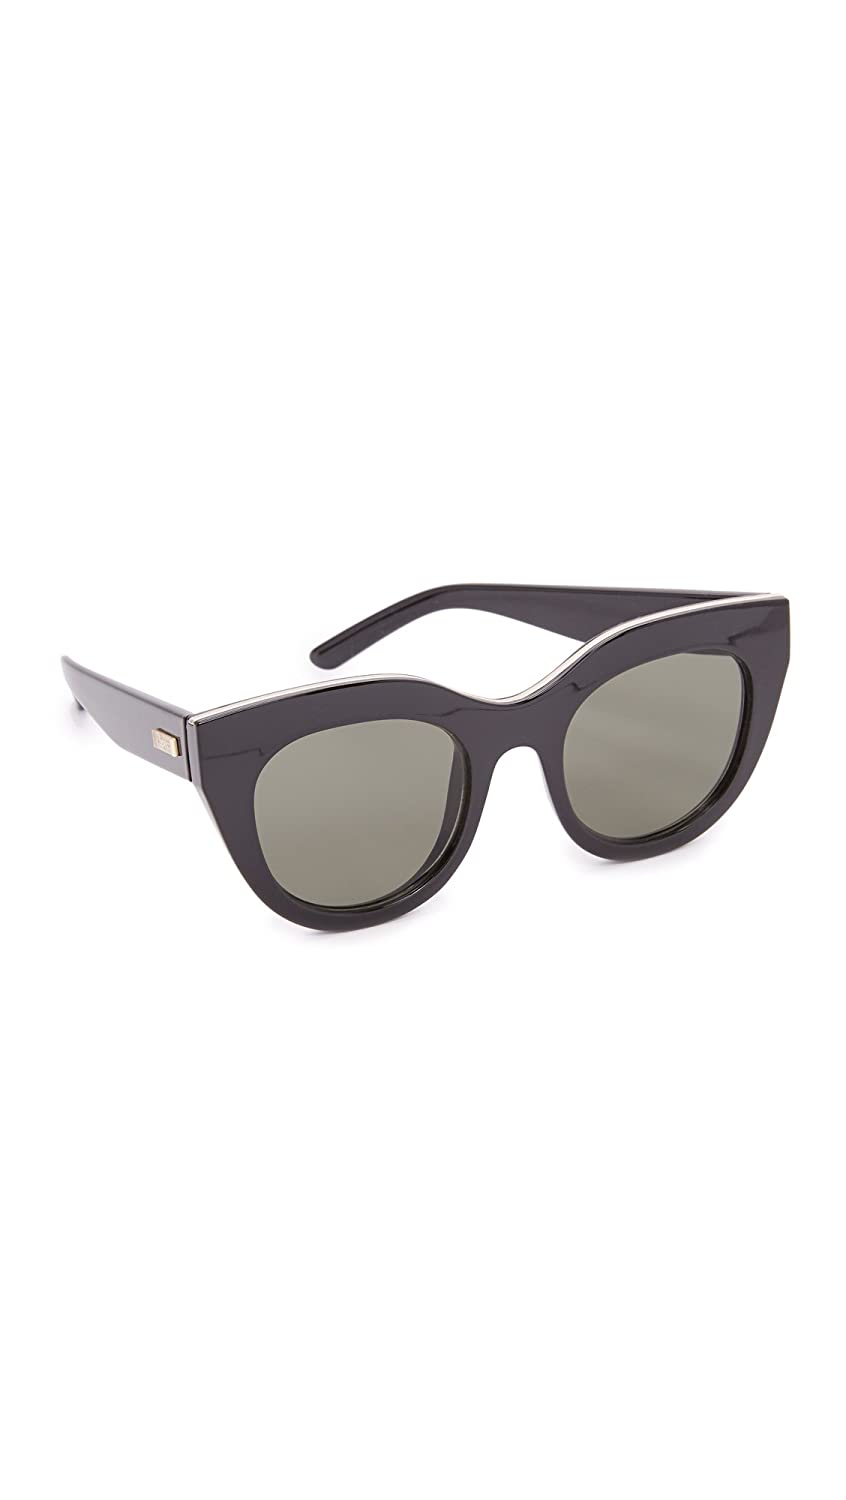 Le Specs Air Heart gafas de sol color negro